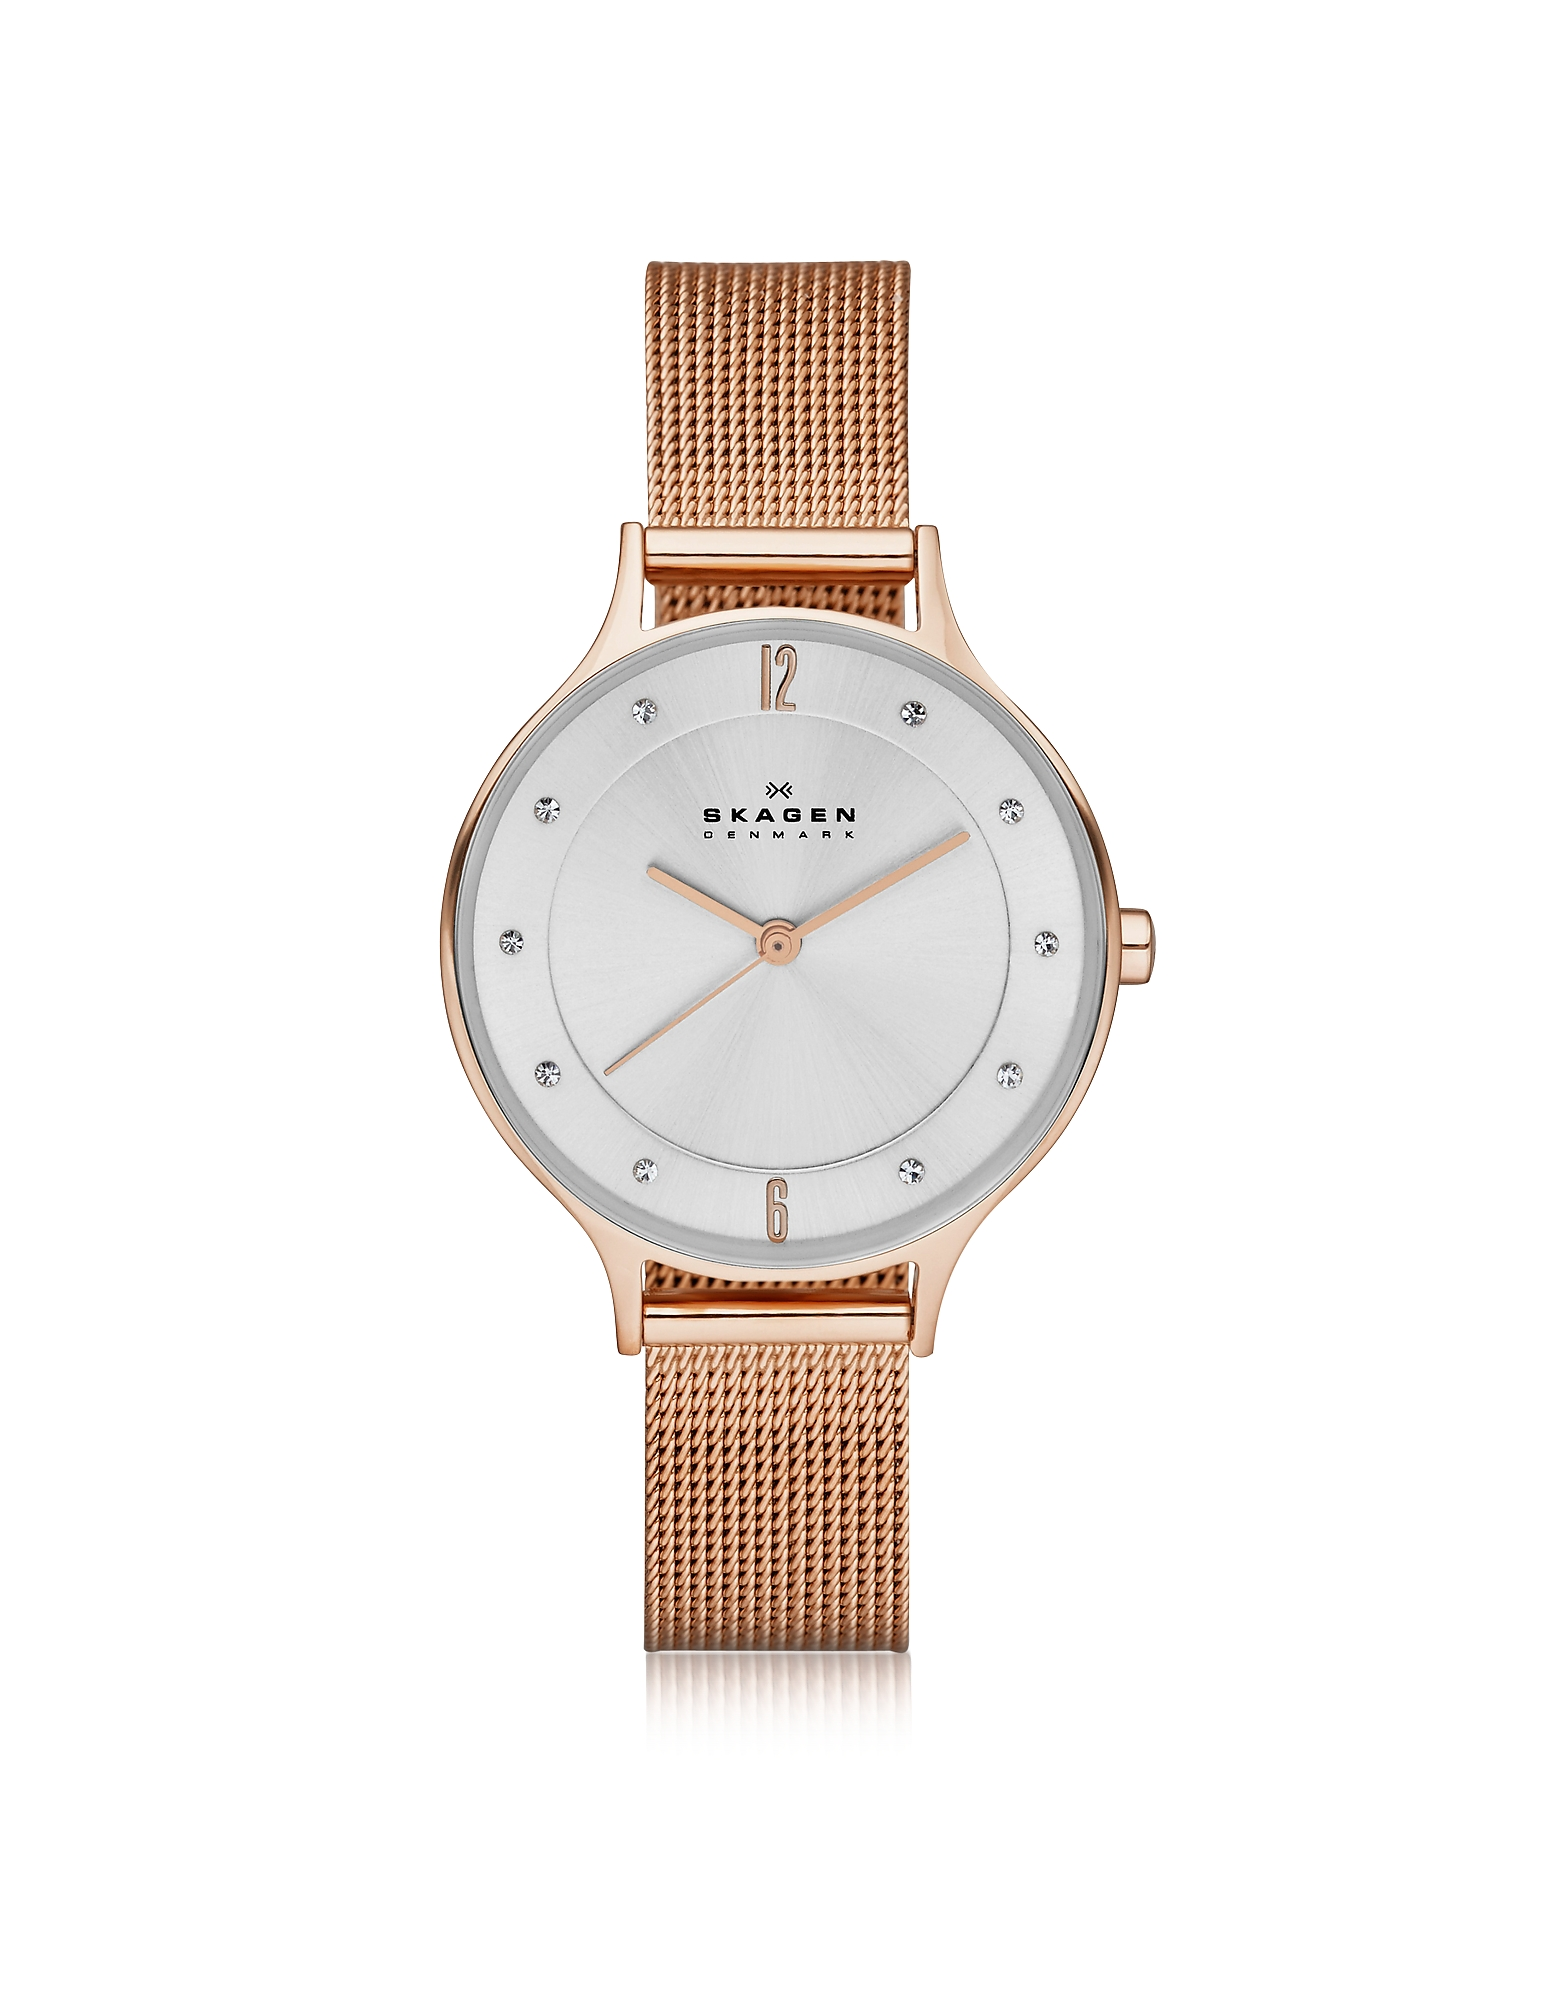 Skagen  Women's Watches Anita Rose Goldtone Stainless Steel Women's Watch w/Mesh Bracelet Band